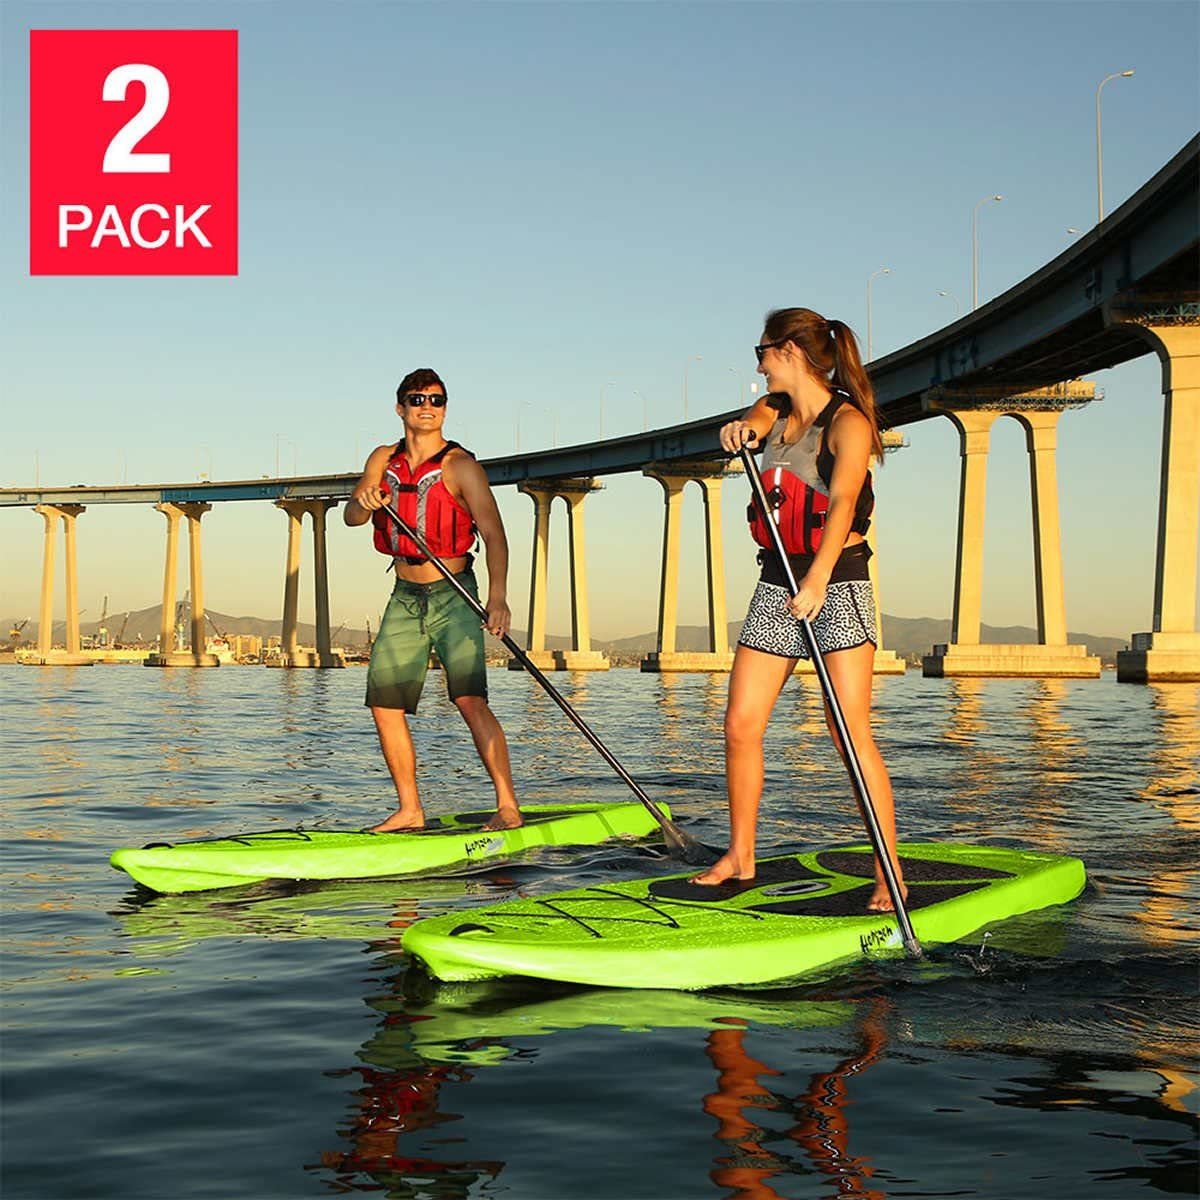 Lifetime 10 Hardshell Horizon Stand Up Paddle Board 2-pack